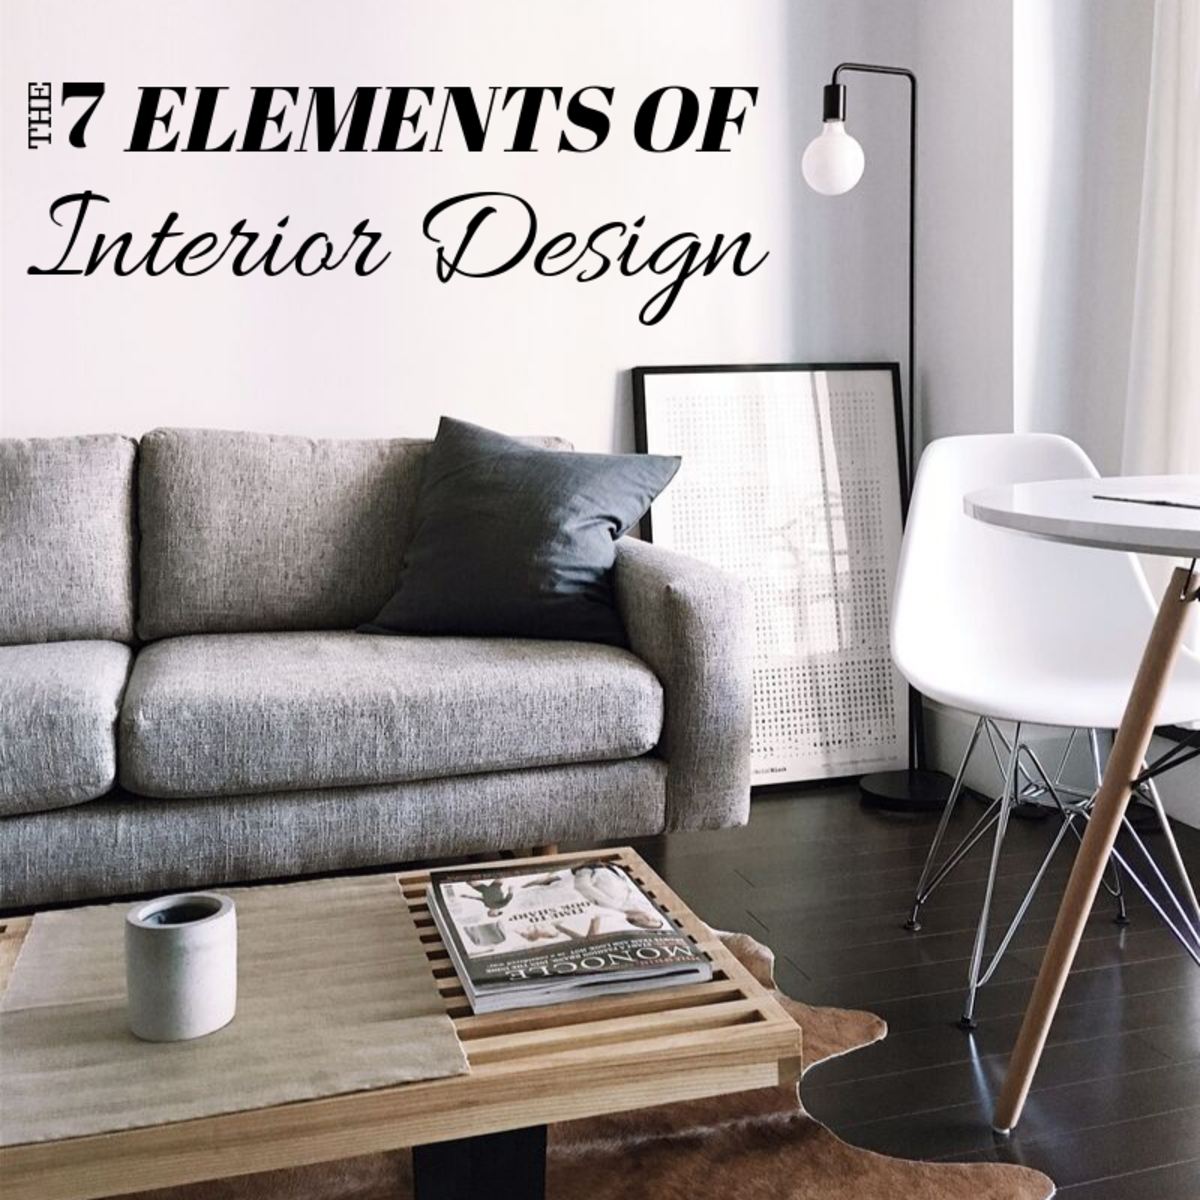 Once you understand the seven elements of interior design, creating a stunning space becomes fun and easy.